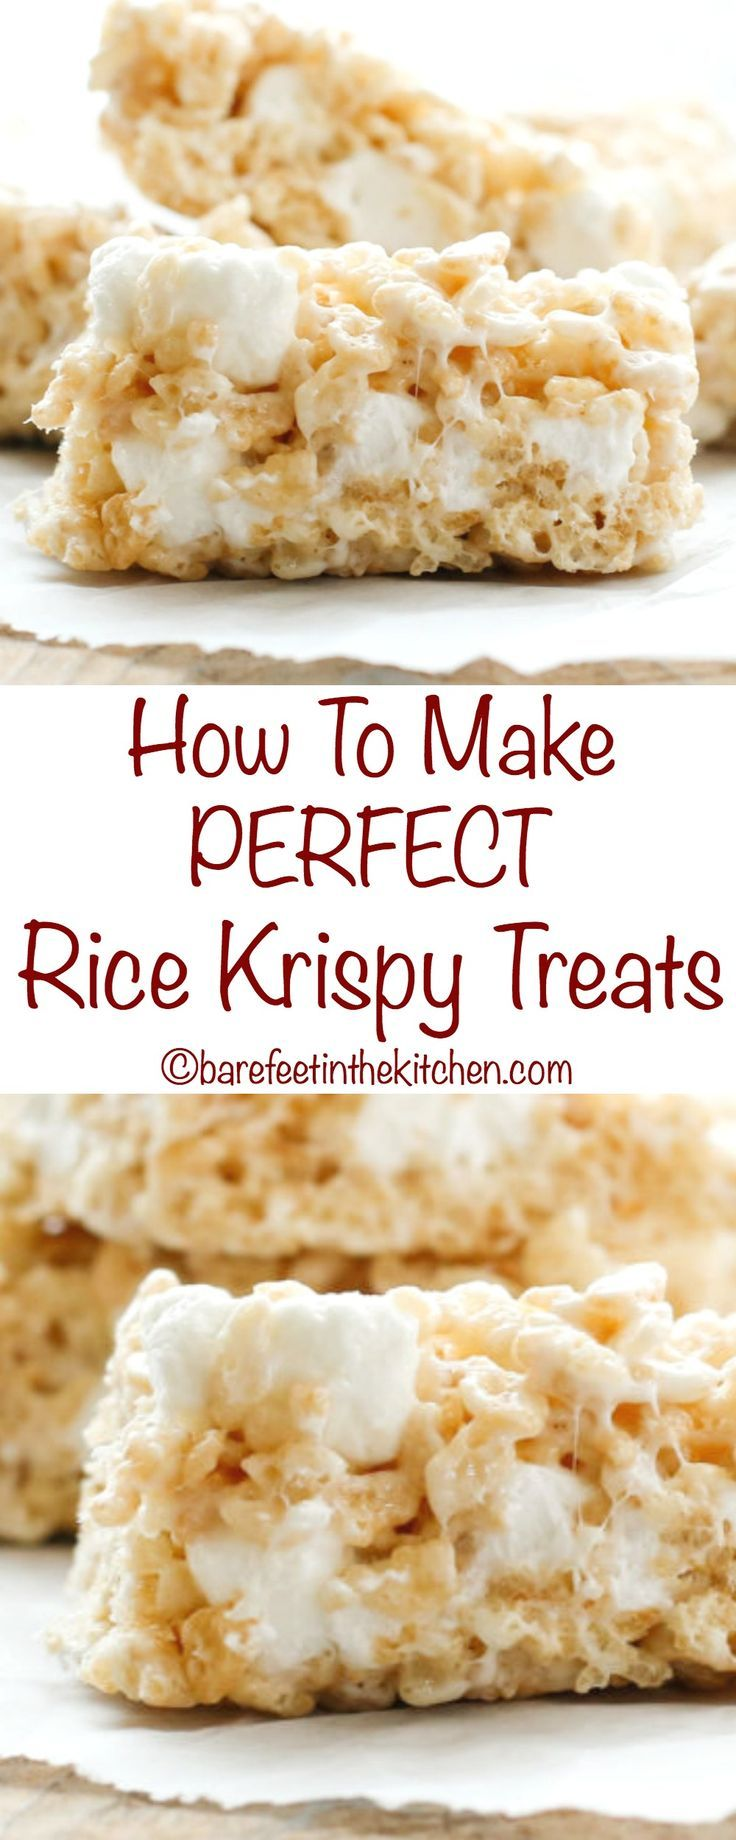 How To Make PERFECT Rice Krispy Treats - get the recipe at barefeetinthekitc... - Süßes - #barefeetinthekitc #krispy #Perfect #Recipe #Rice #Süßes #Treats #marshmallowtreats